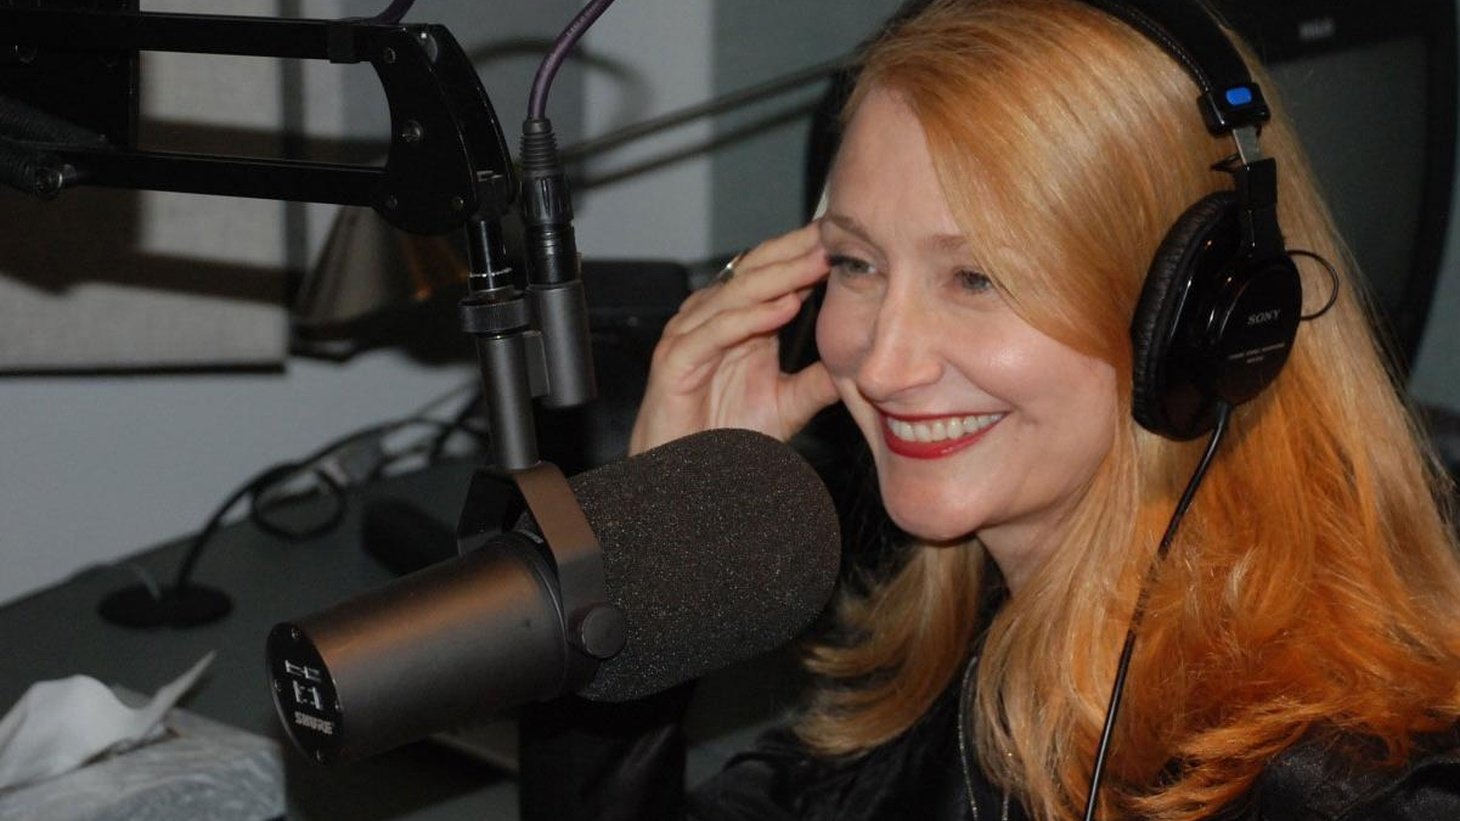 Actress Patricia Clarkson  (The Station Agent, Vicky Cristina Barcelona) moves from impulsive characters -- like  her roles in High Art and Whatever Works, to thoughtful  ones -- like her role in the new film Cairo Time.